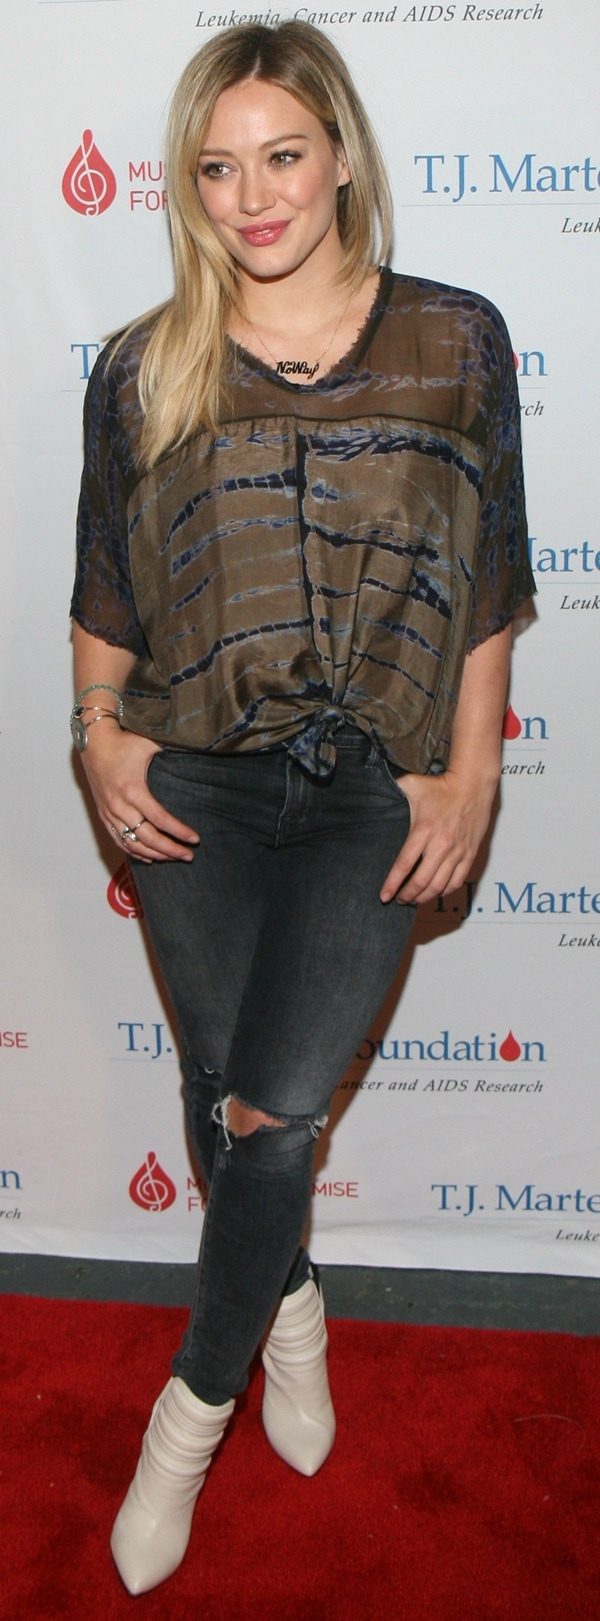 Hilary Duff sporting anoversized Raquel Allegra top, which she knotted in the front, and ripped skinny jeans